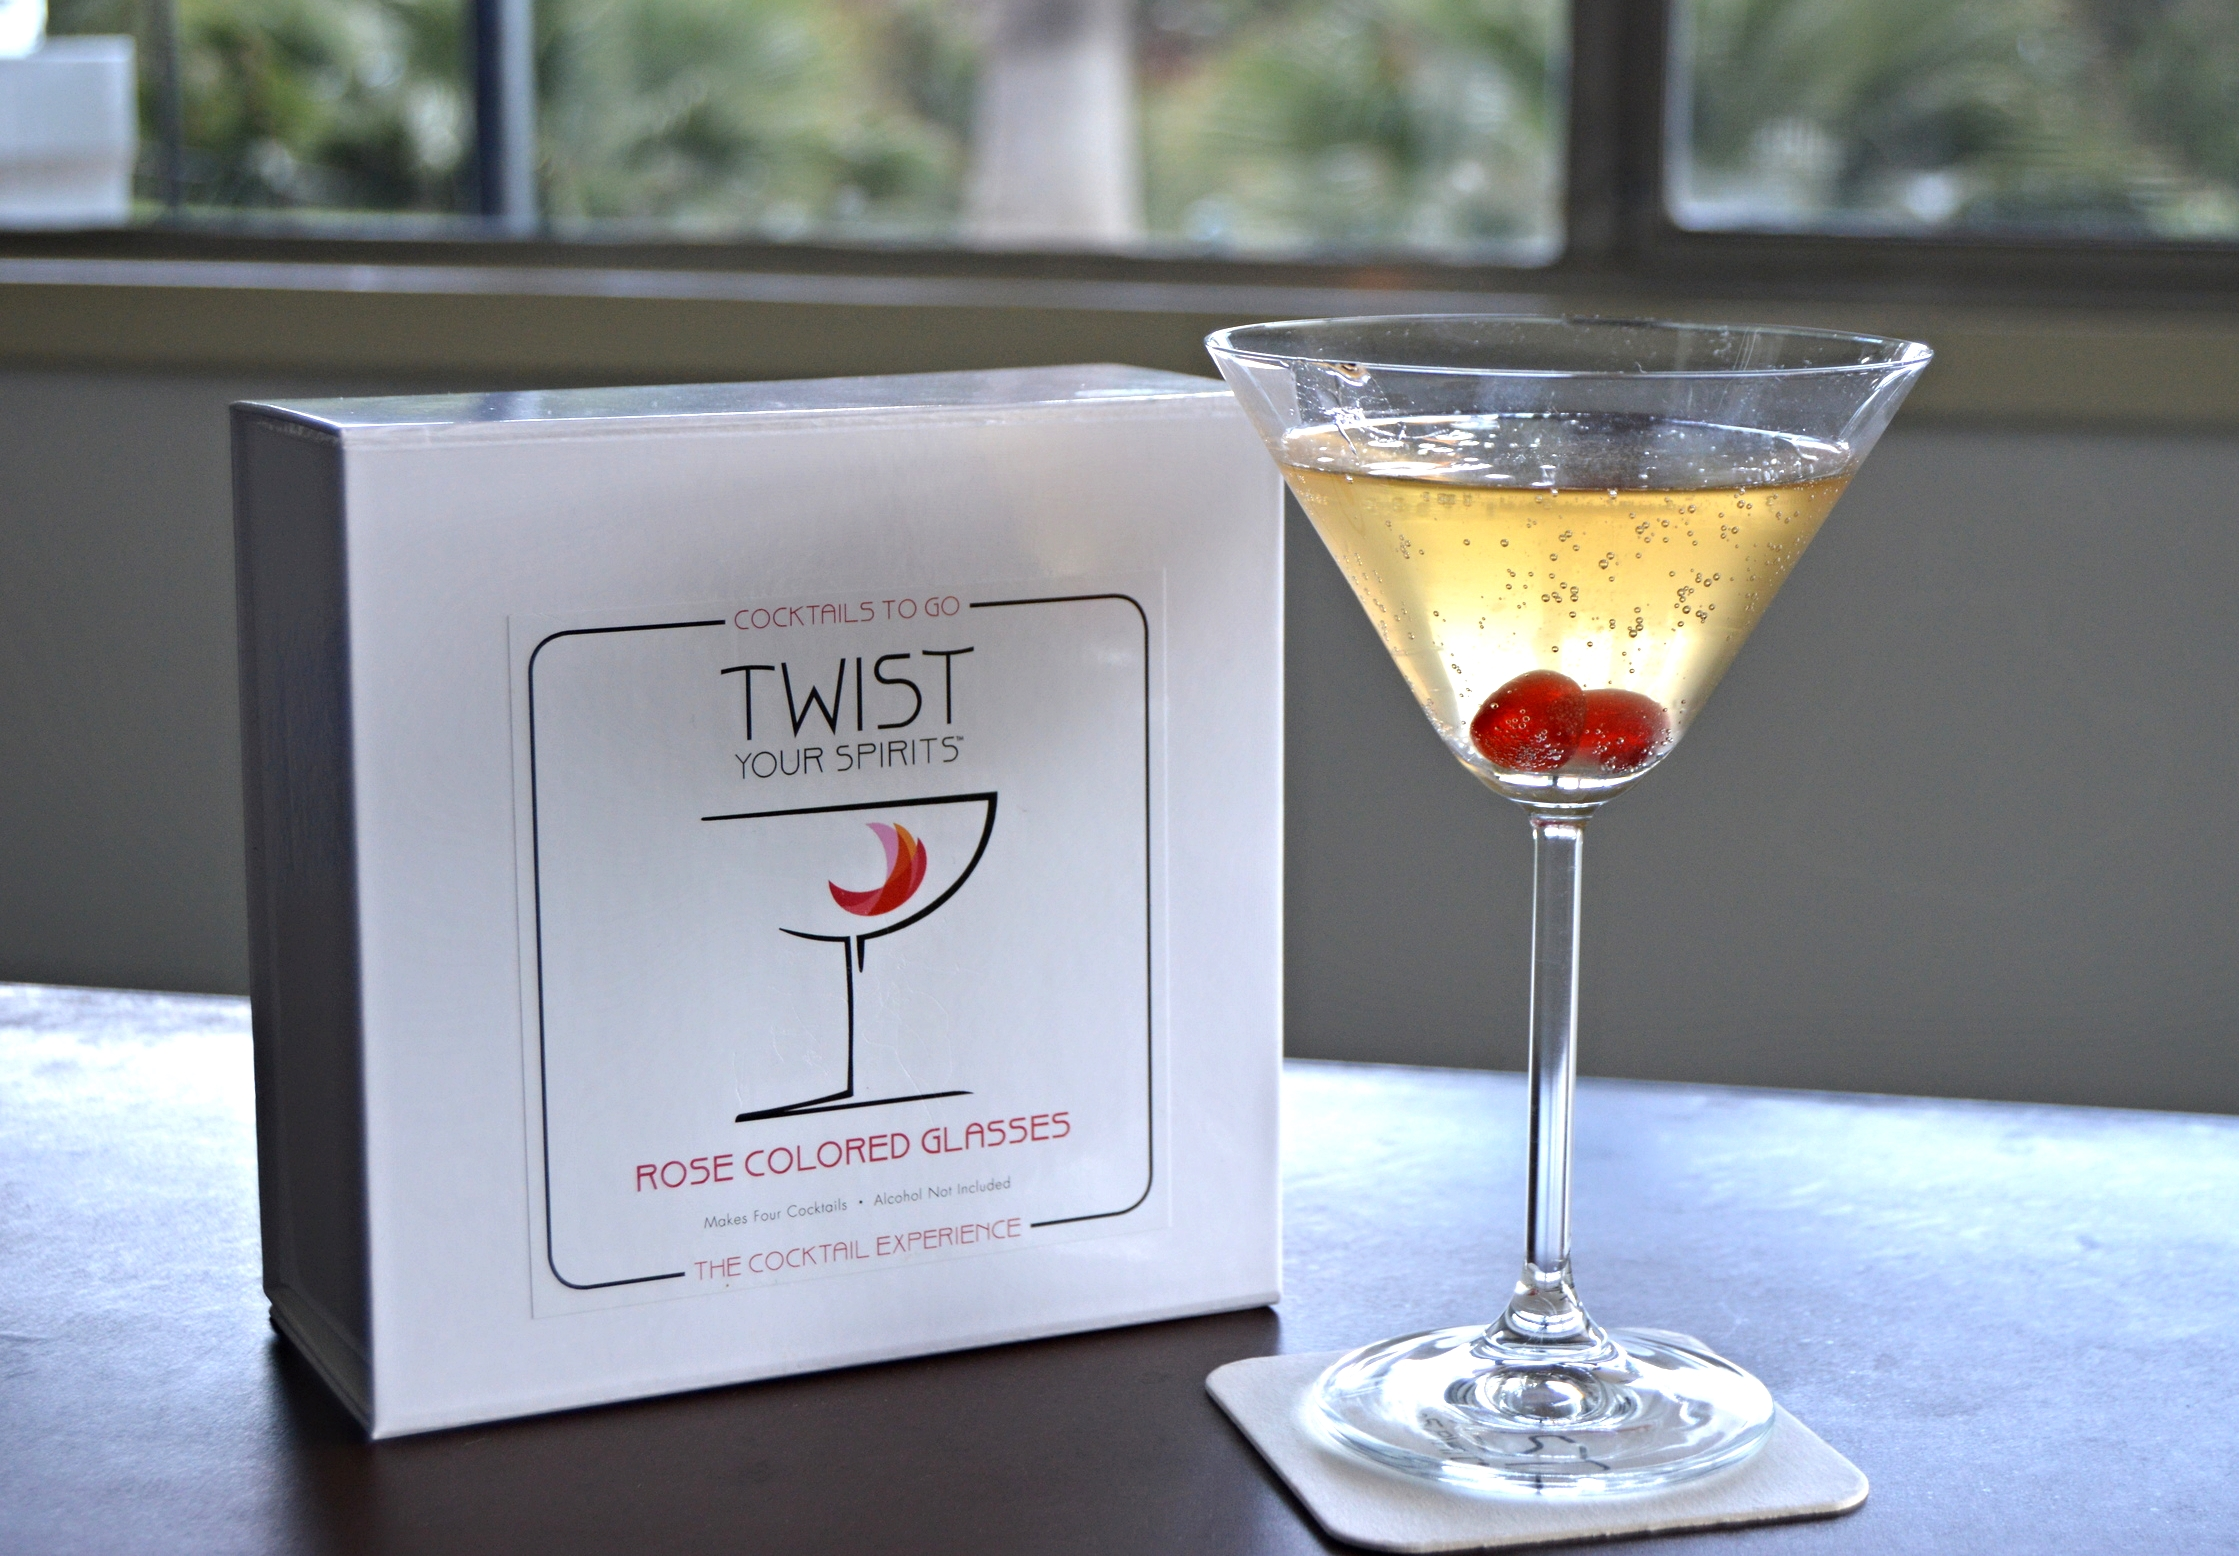 Twist Your Spirits Rose Colored Glasses Cocktail Kit , $30.00